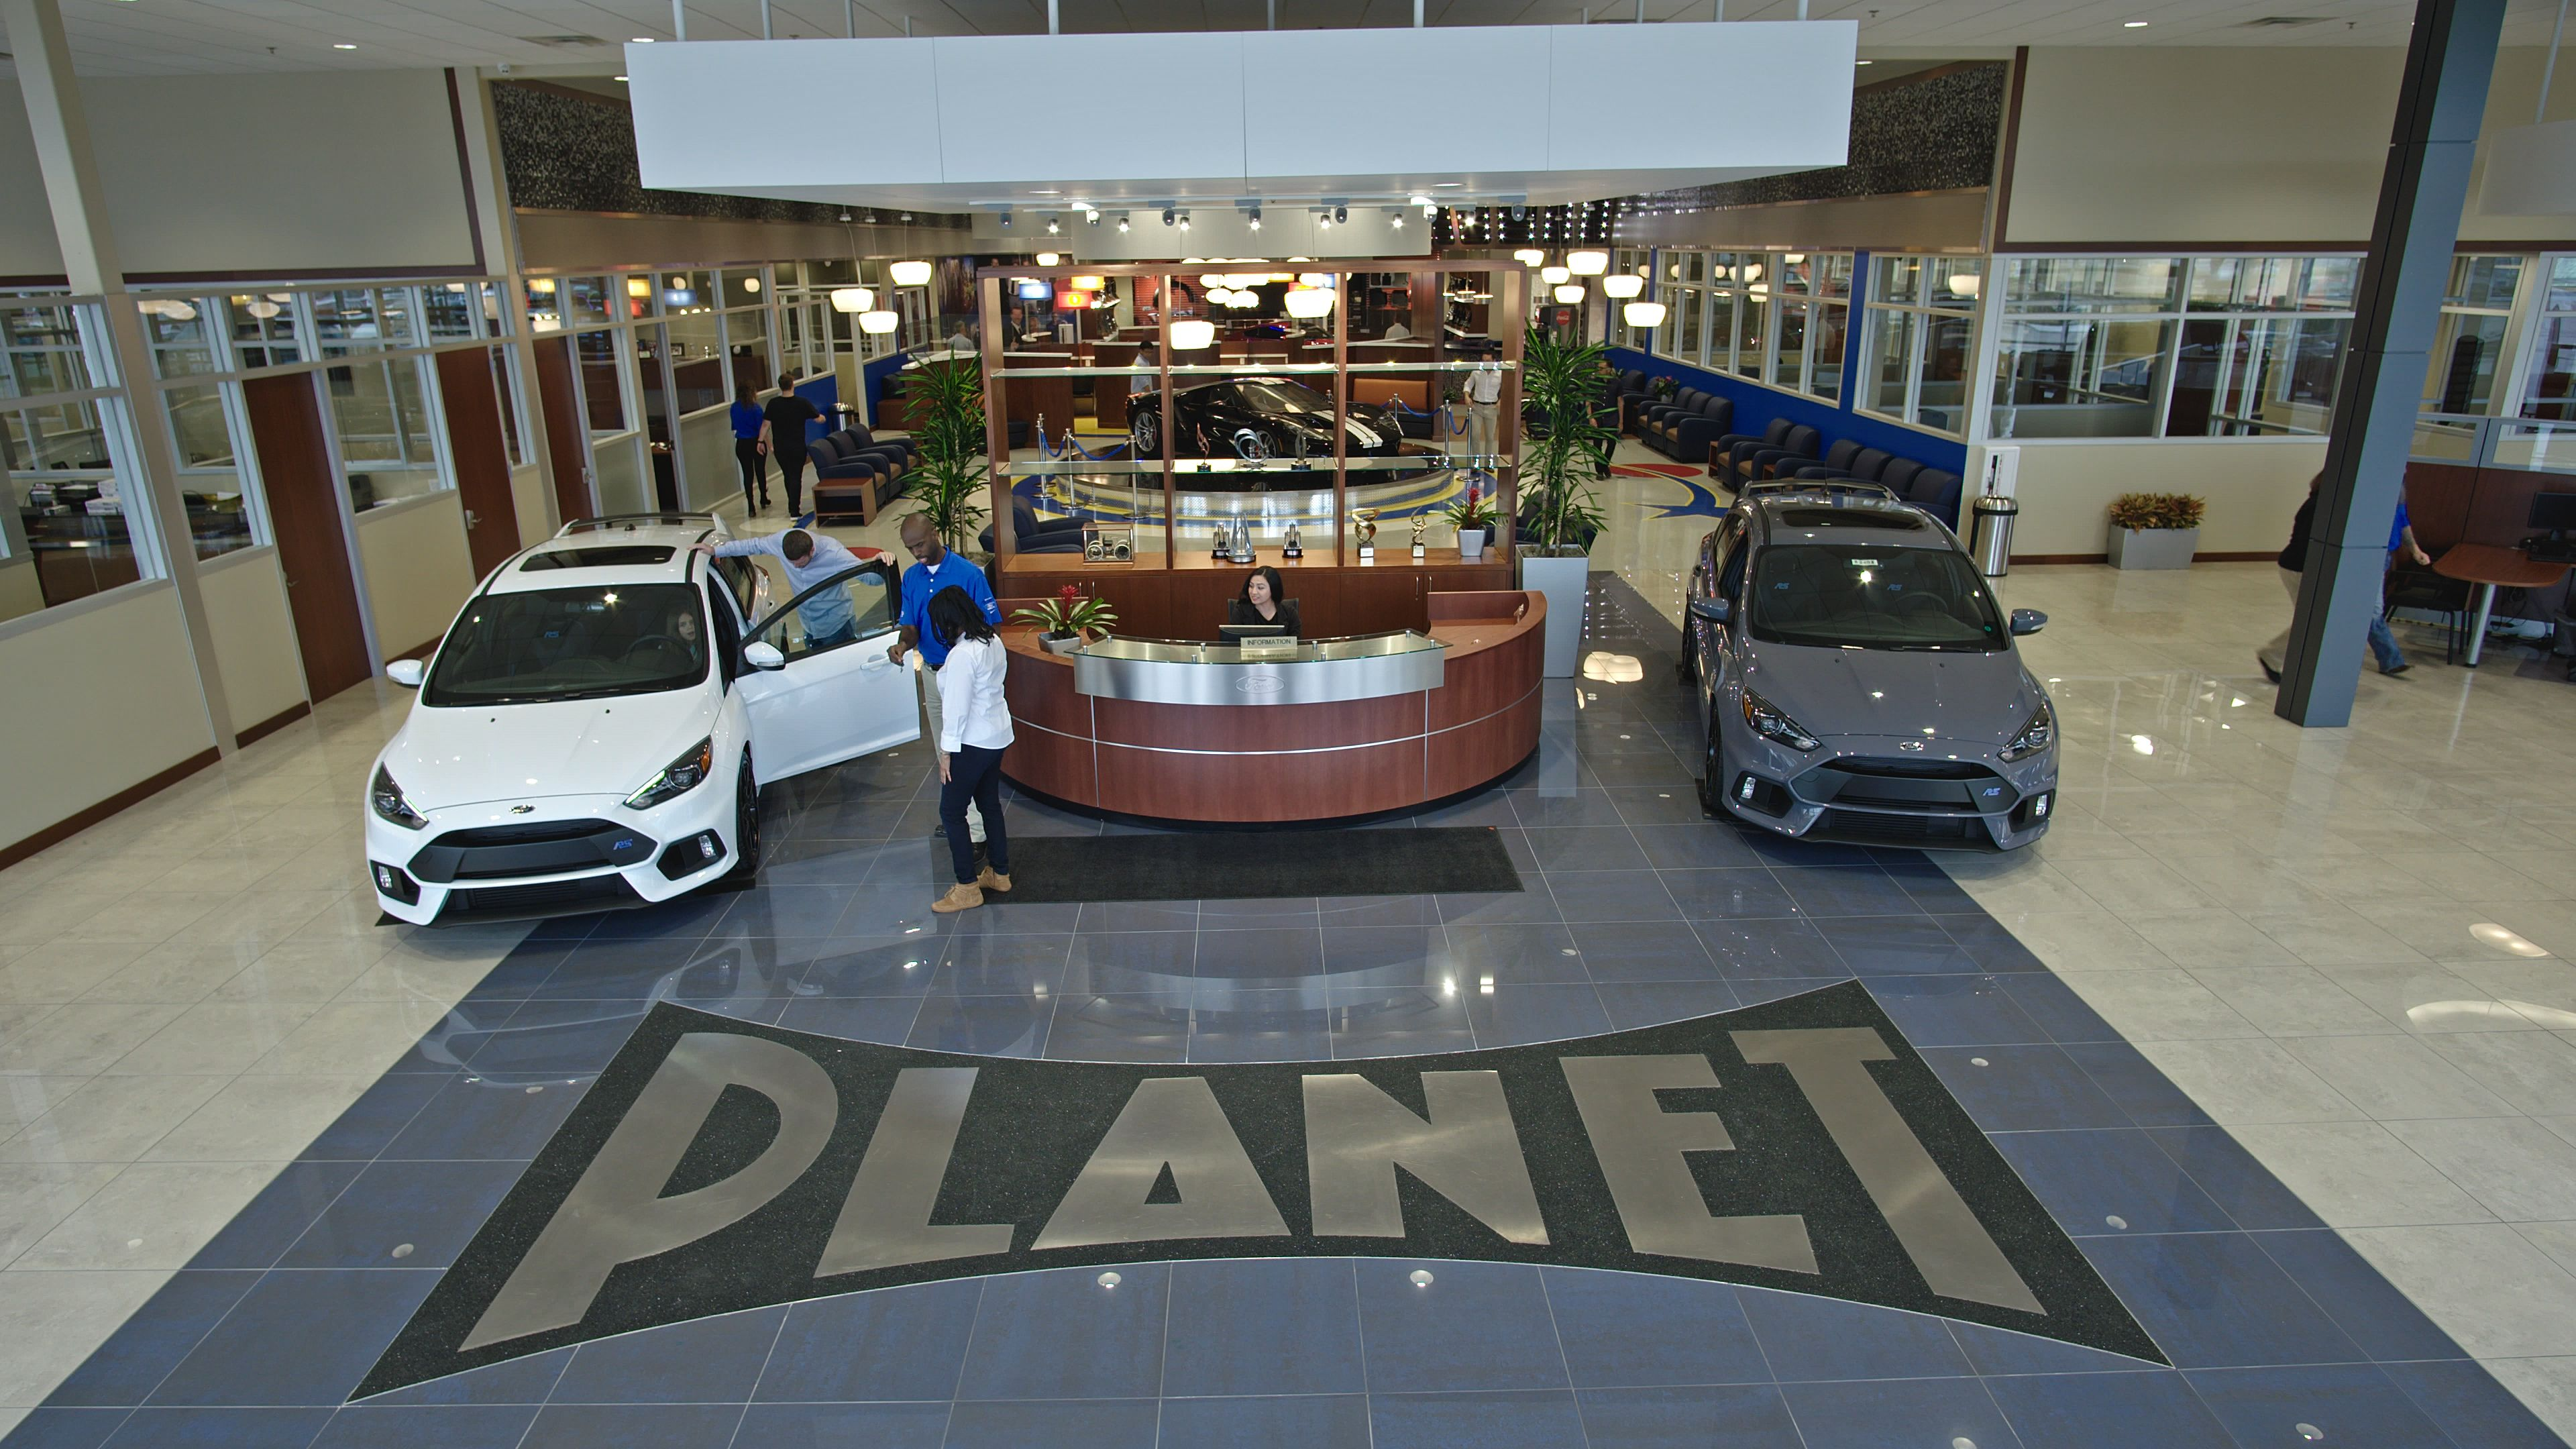 Randall Reed S Planet Ford In Spring Texas Has Been The No 1